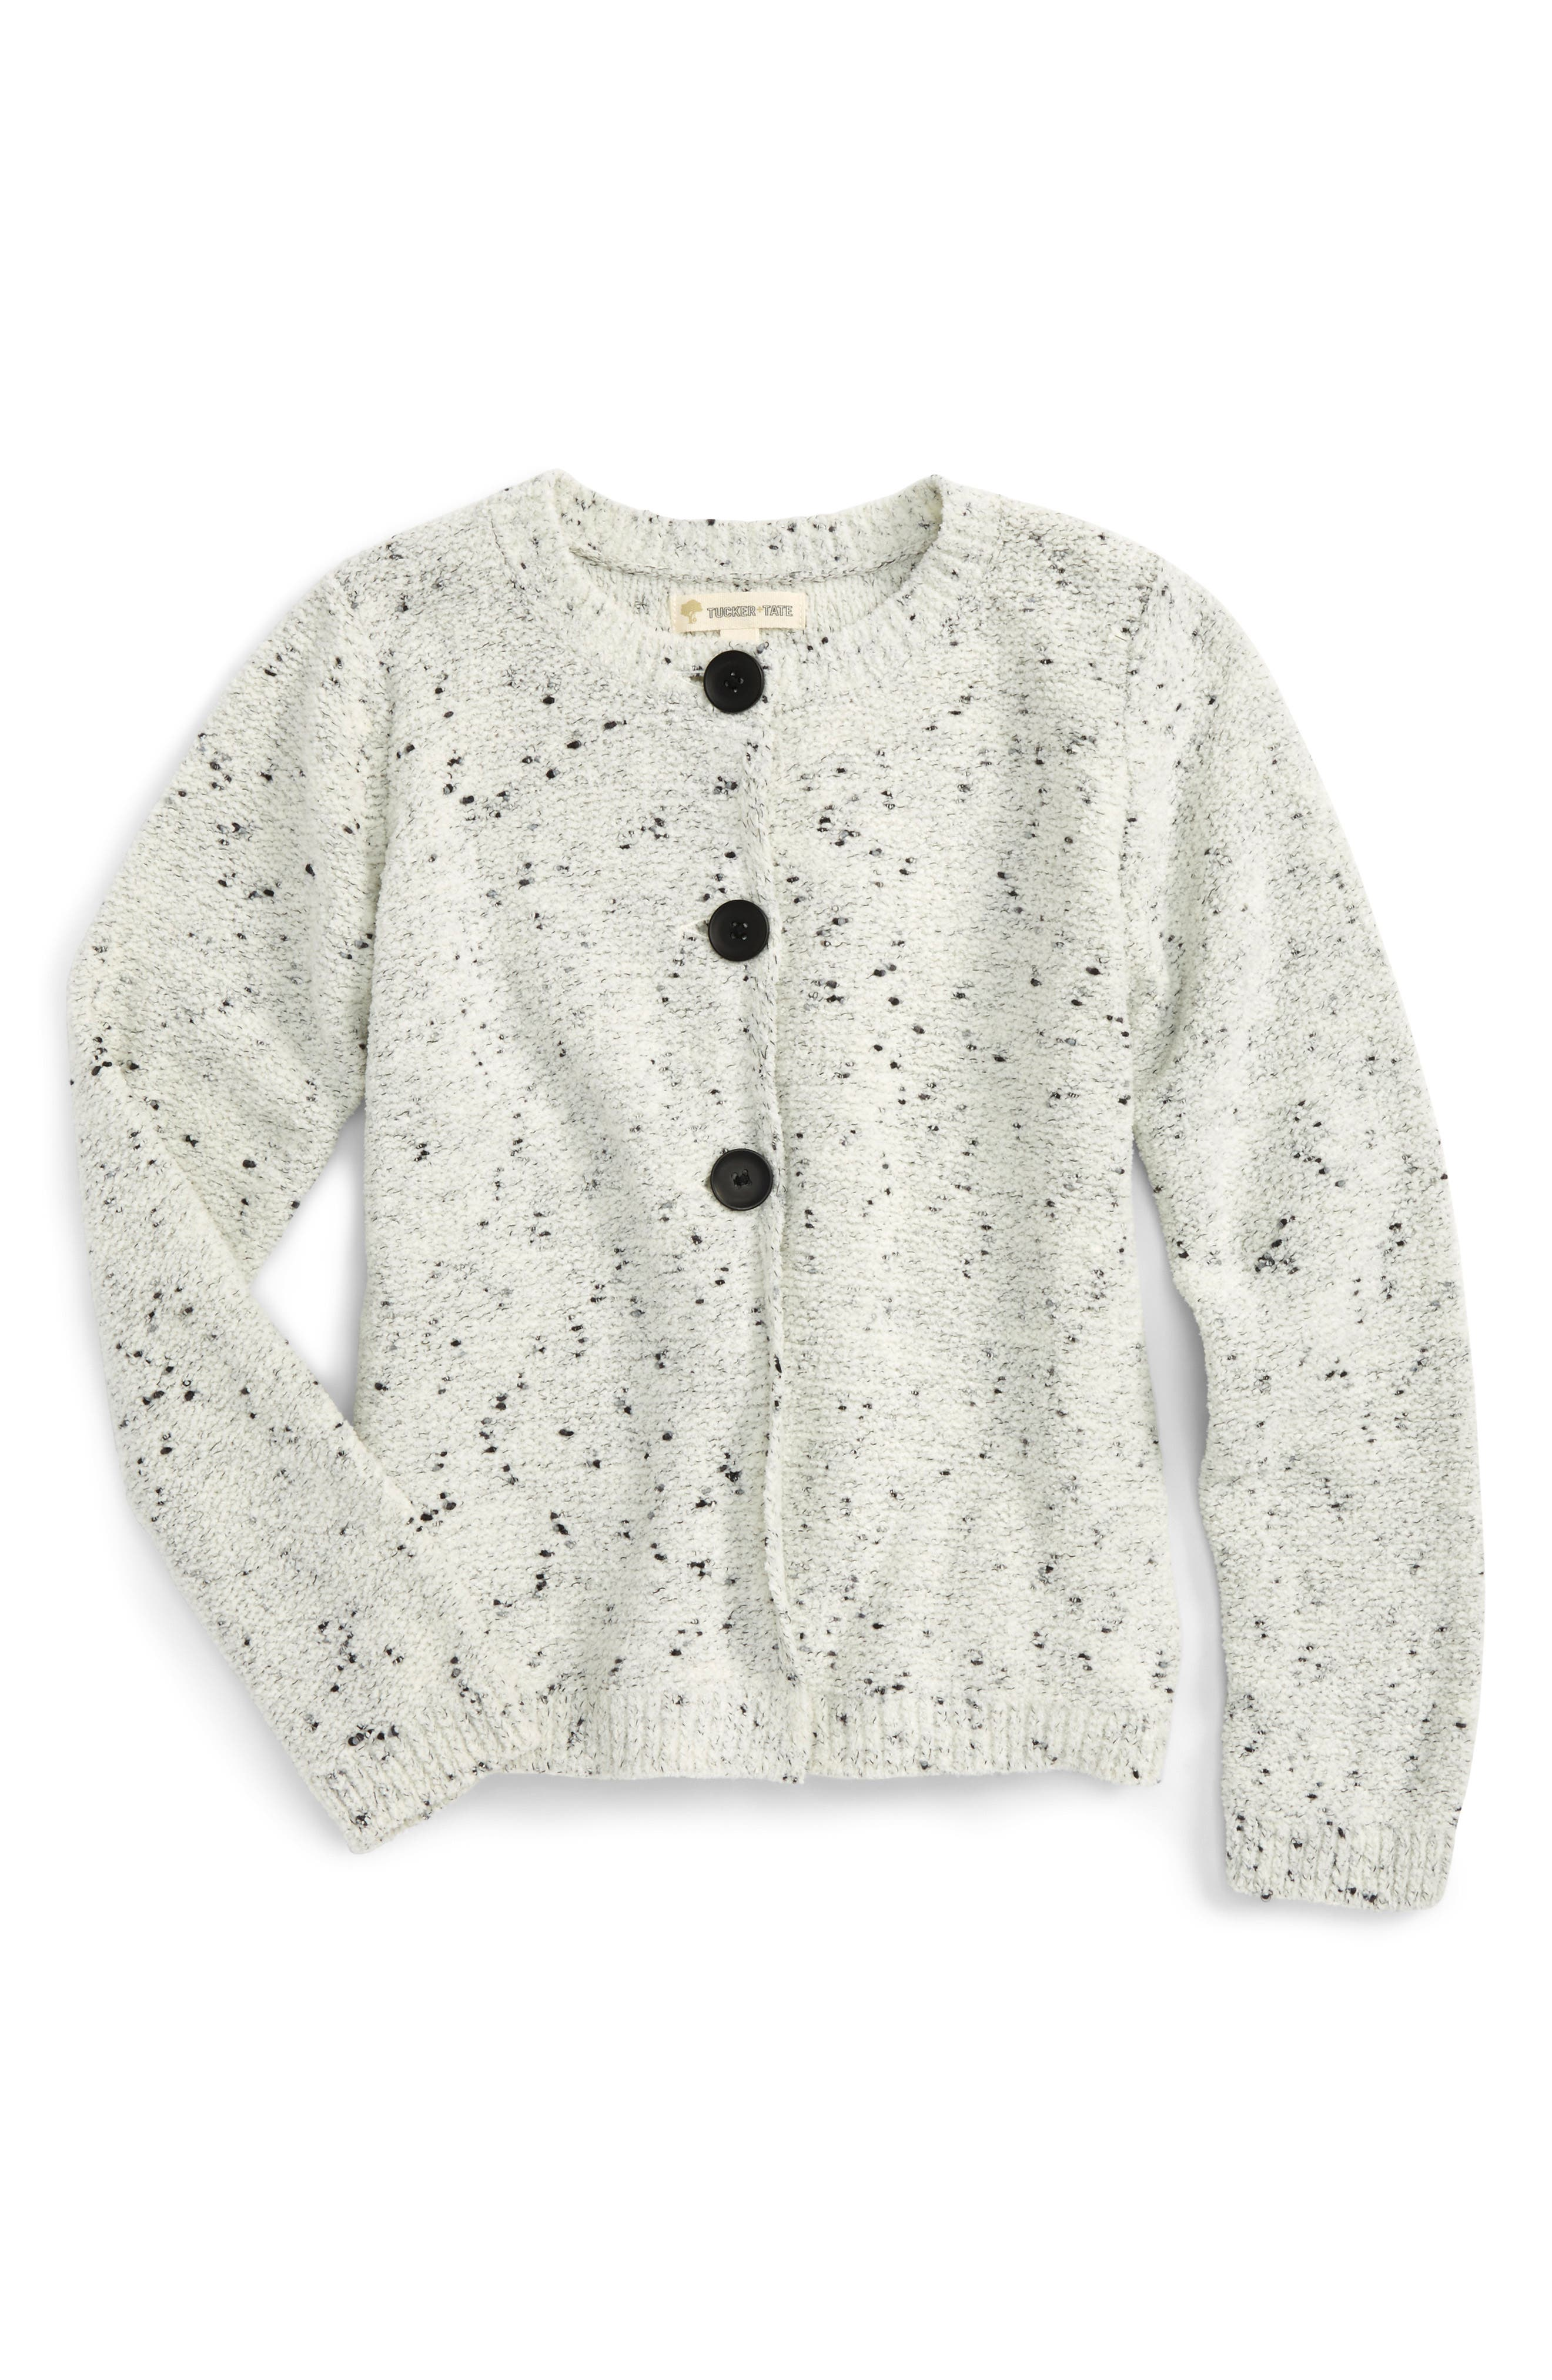 Speckle Swing Cardigan,                             Main thumbnail 1, color,                             Ivory Egret- Black